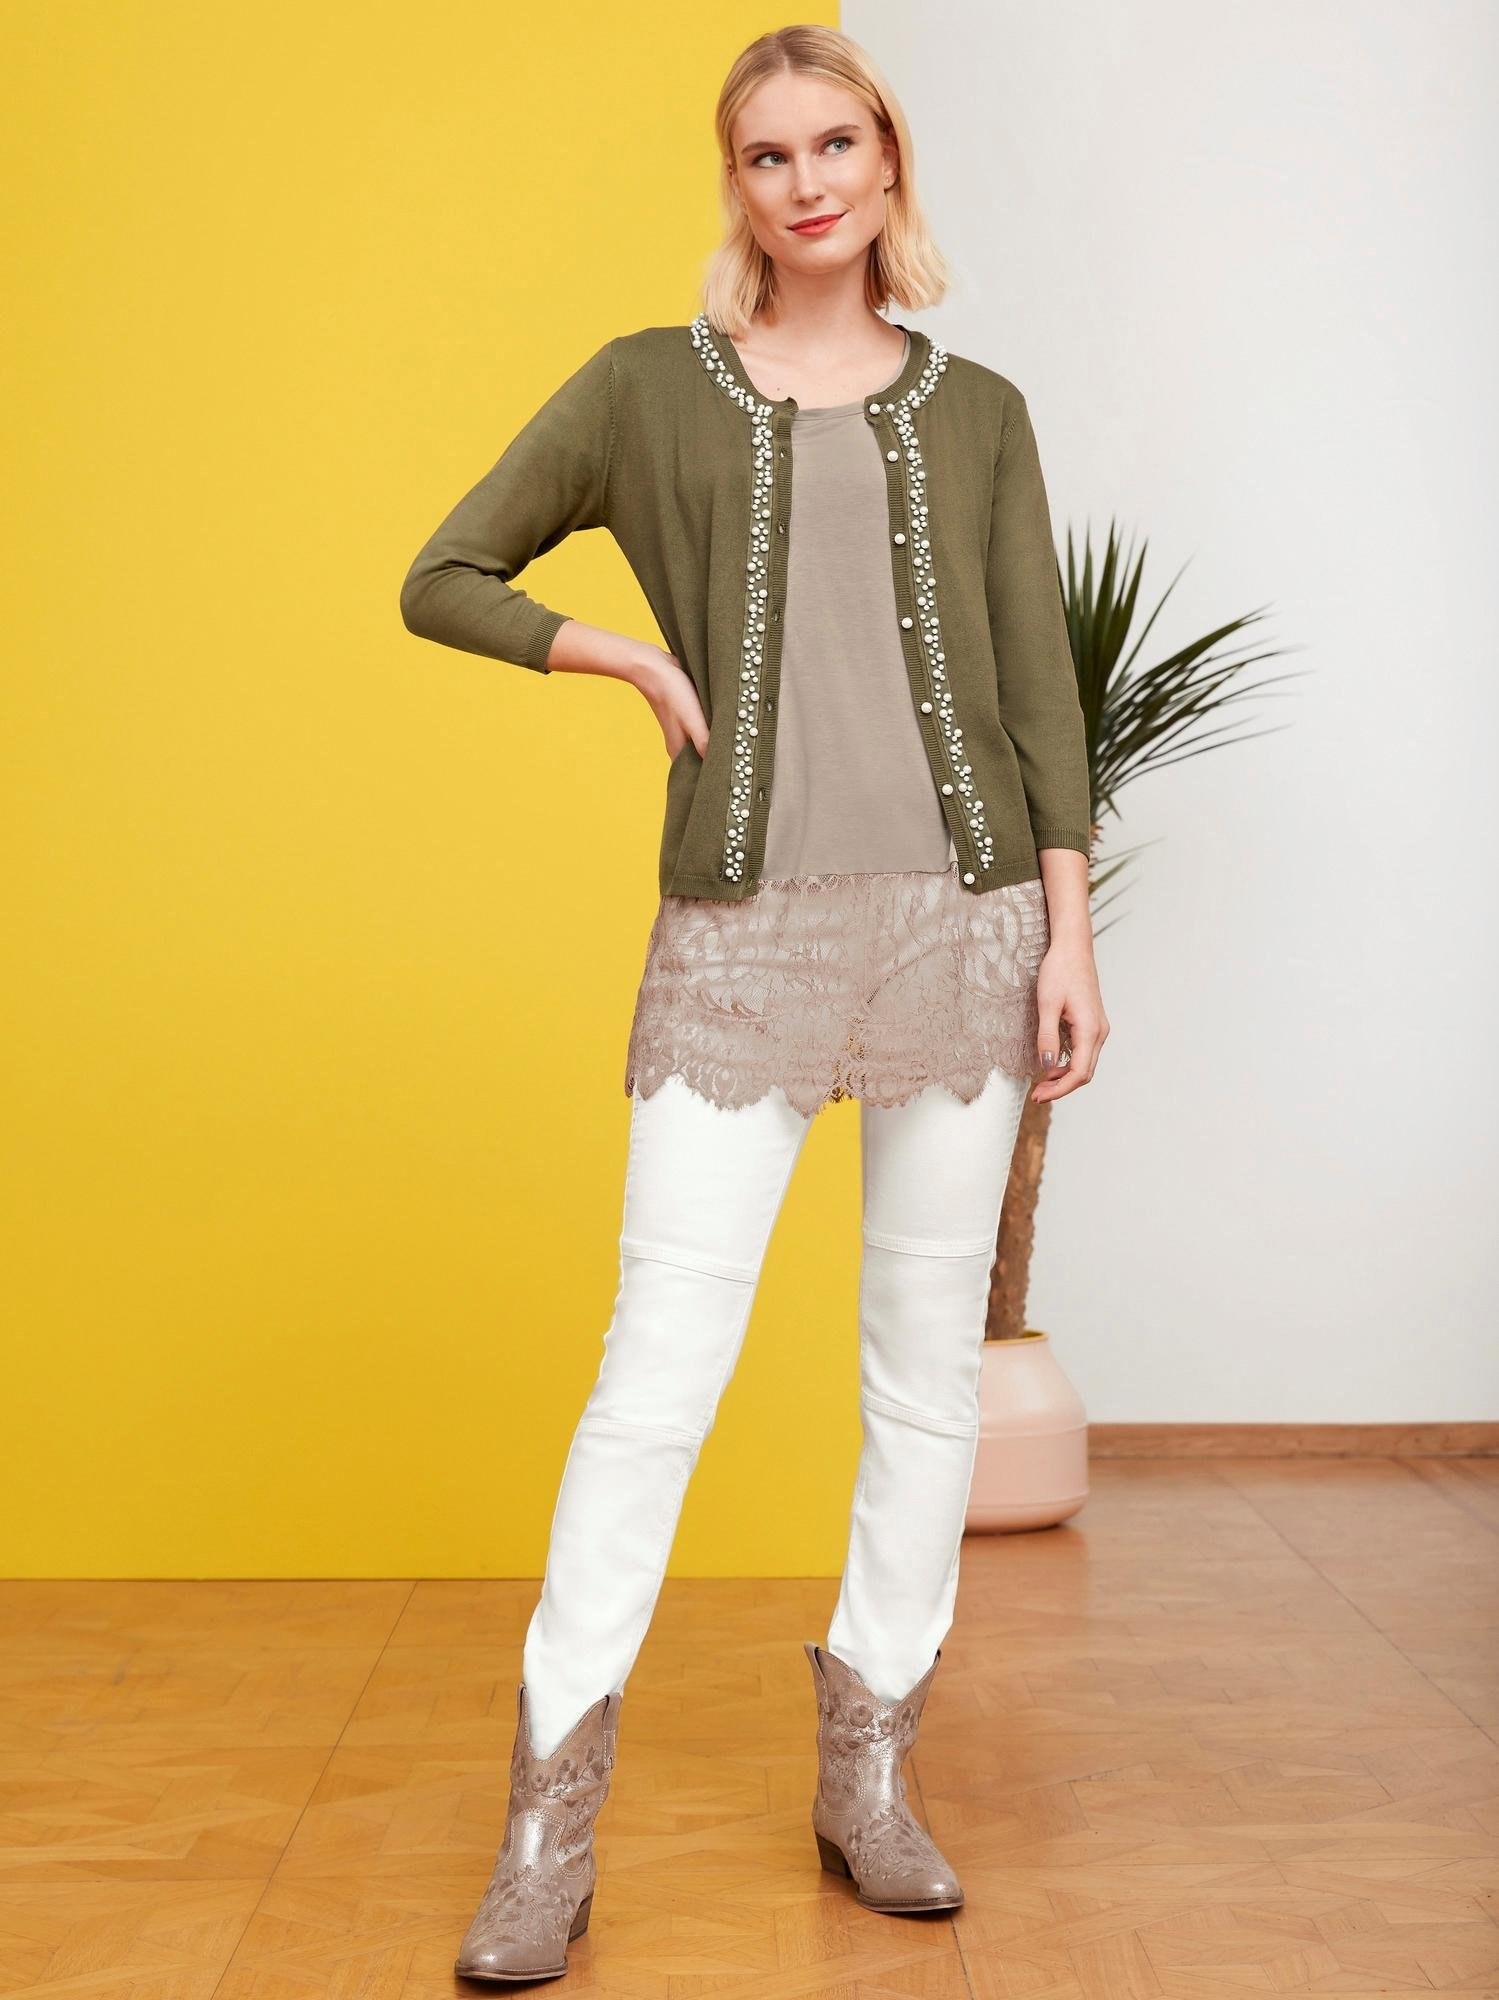 Cardigan In Winkel Online Cardigan In De Rj45LA